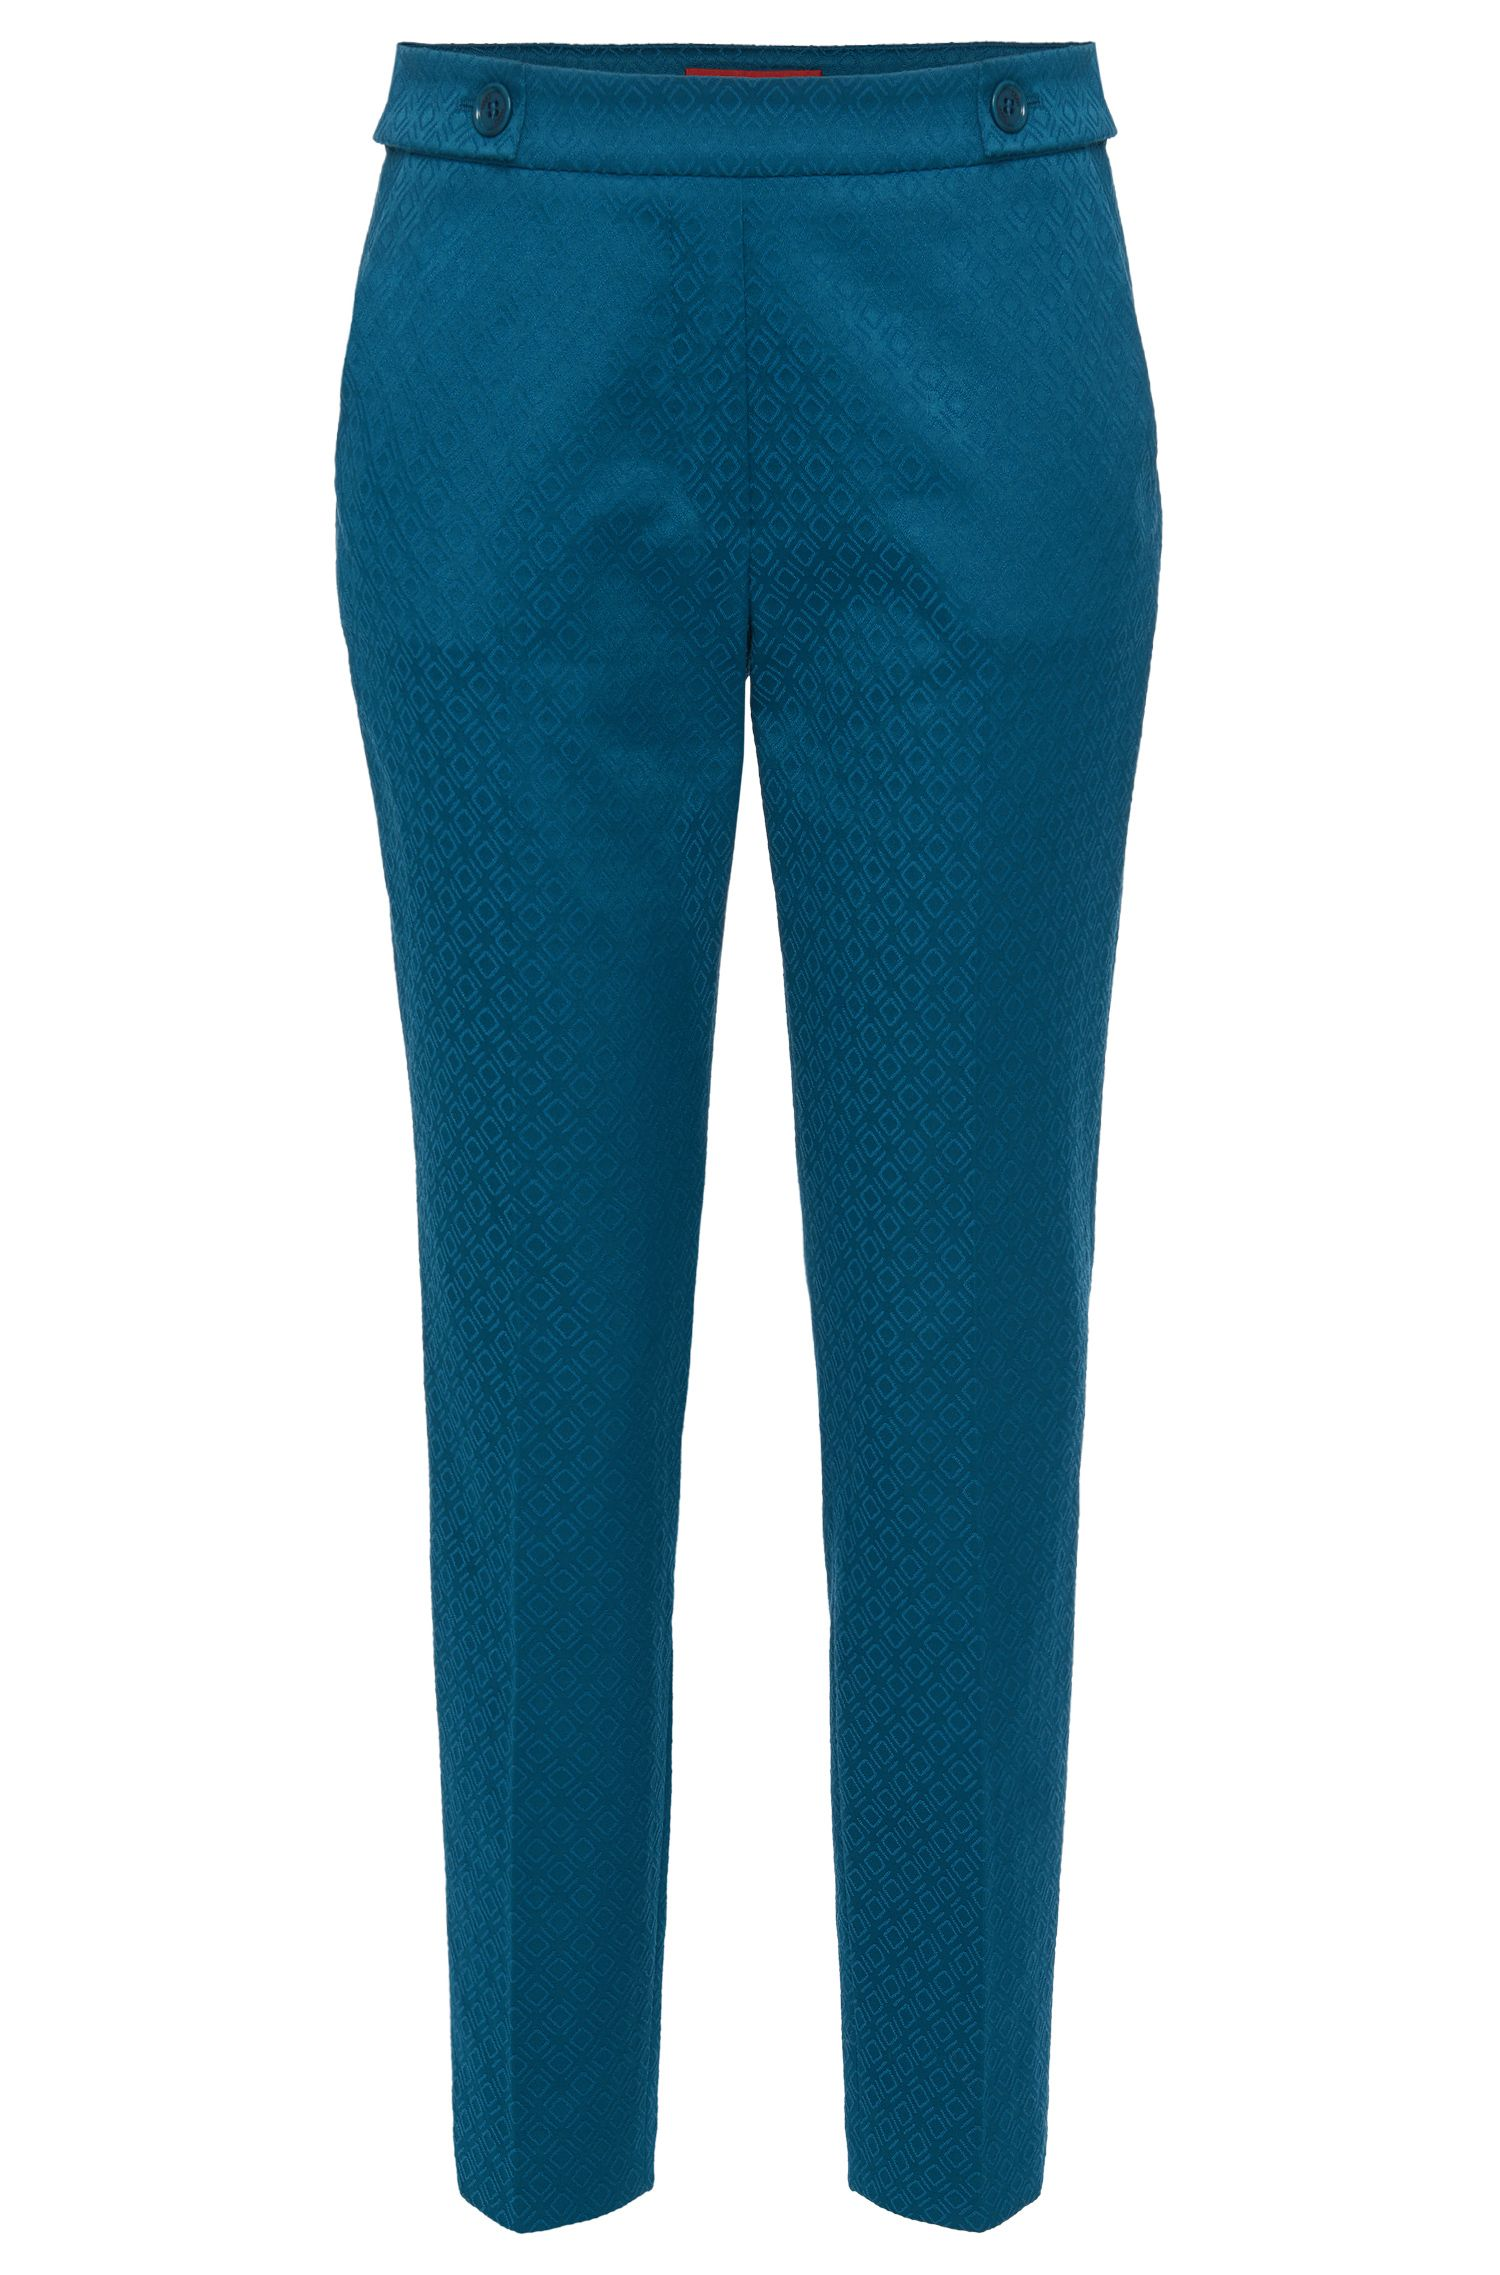 Jacquard trousers in cotton blend with elastane: 'Himonis-1'